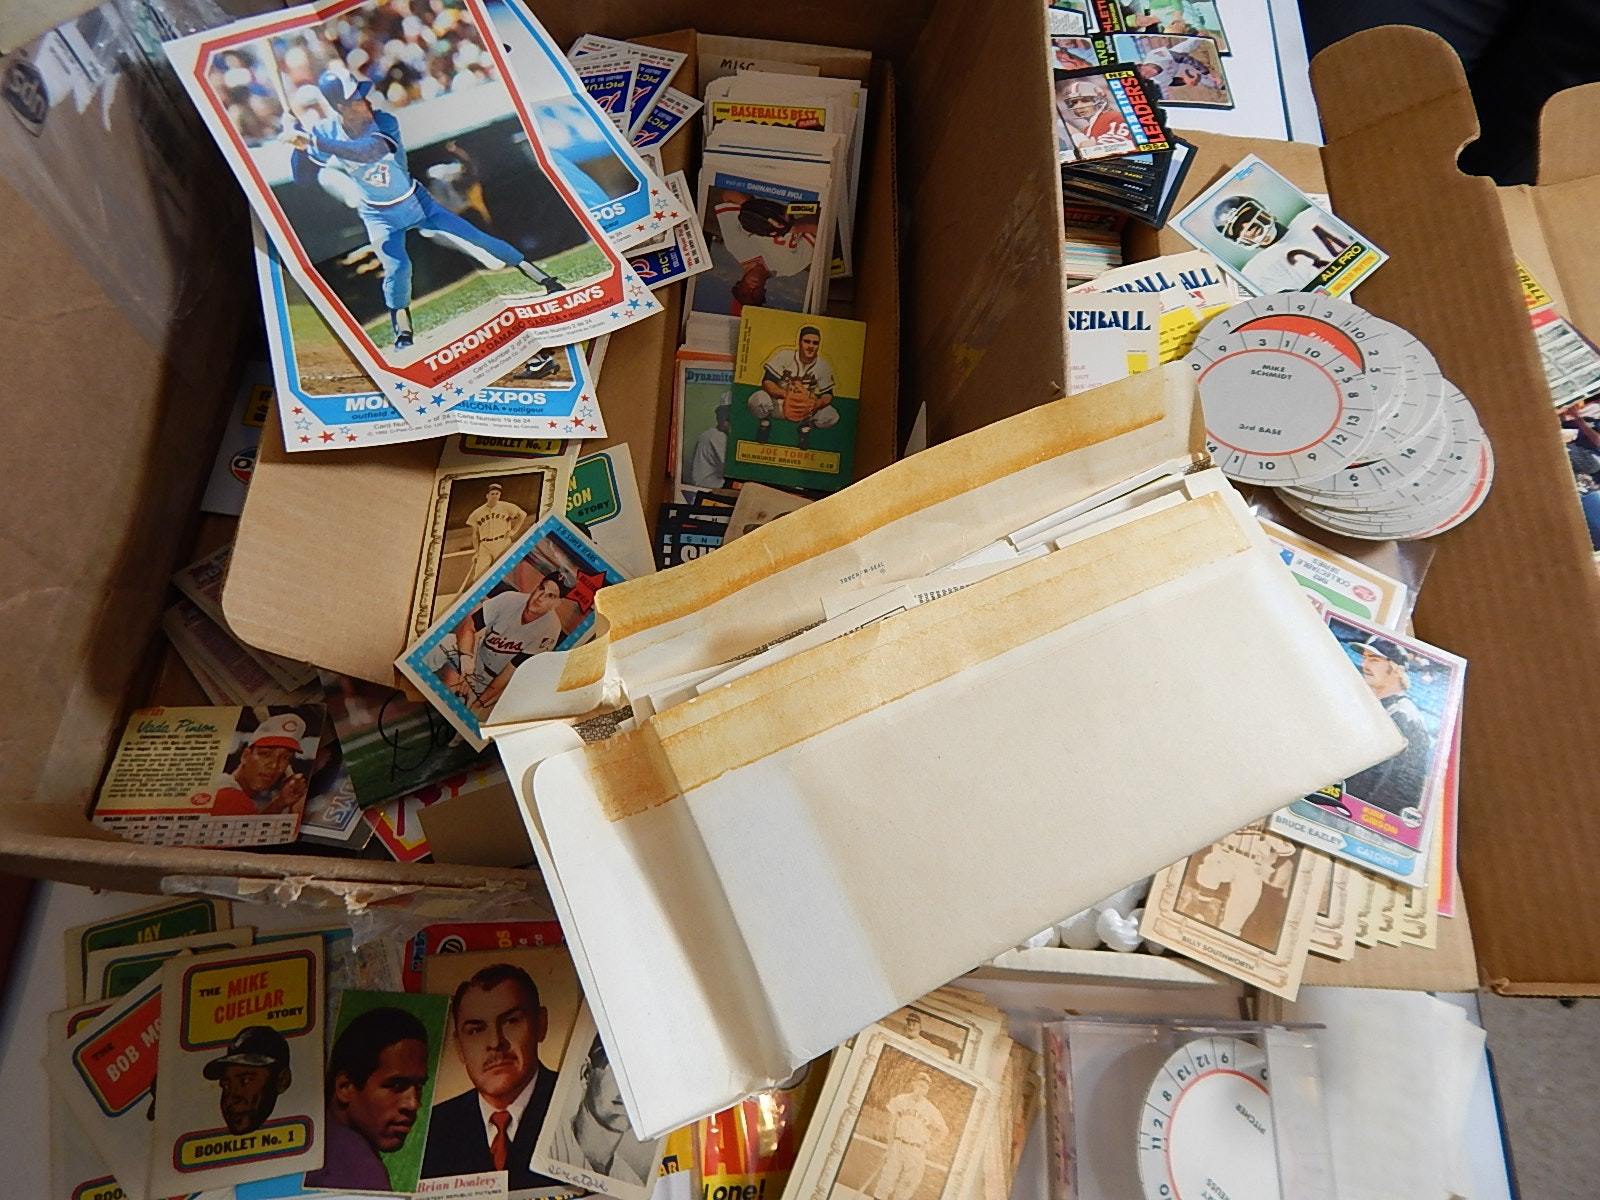 Large Sports Card Collection with Baseball, Football, and Basketball